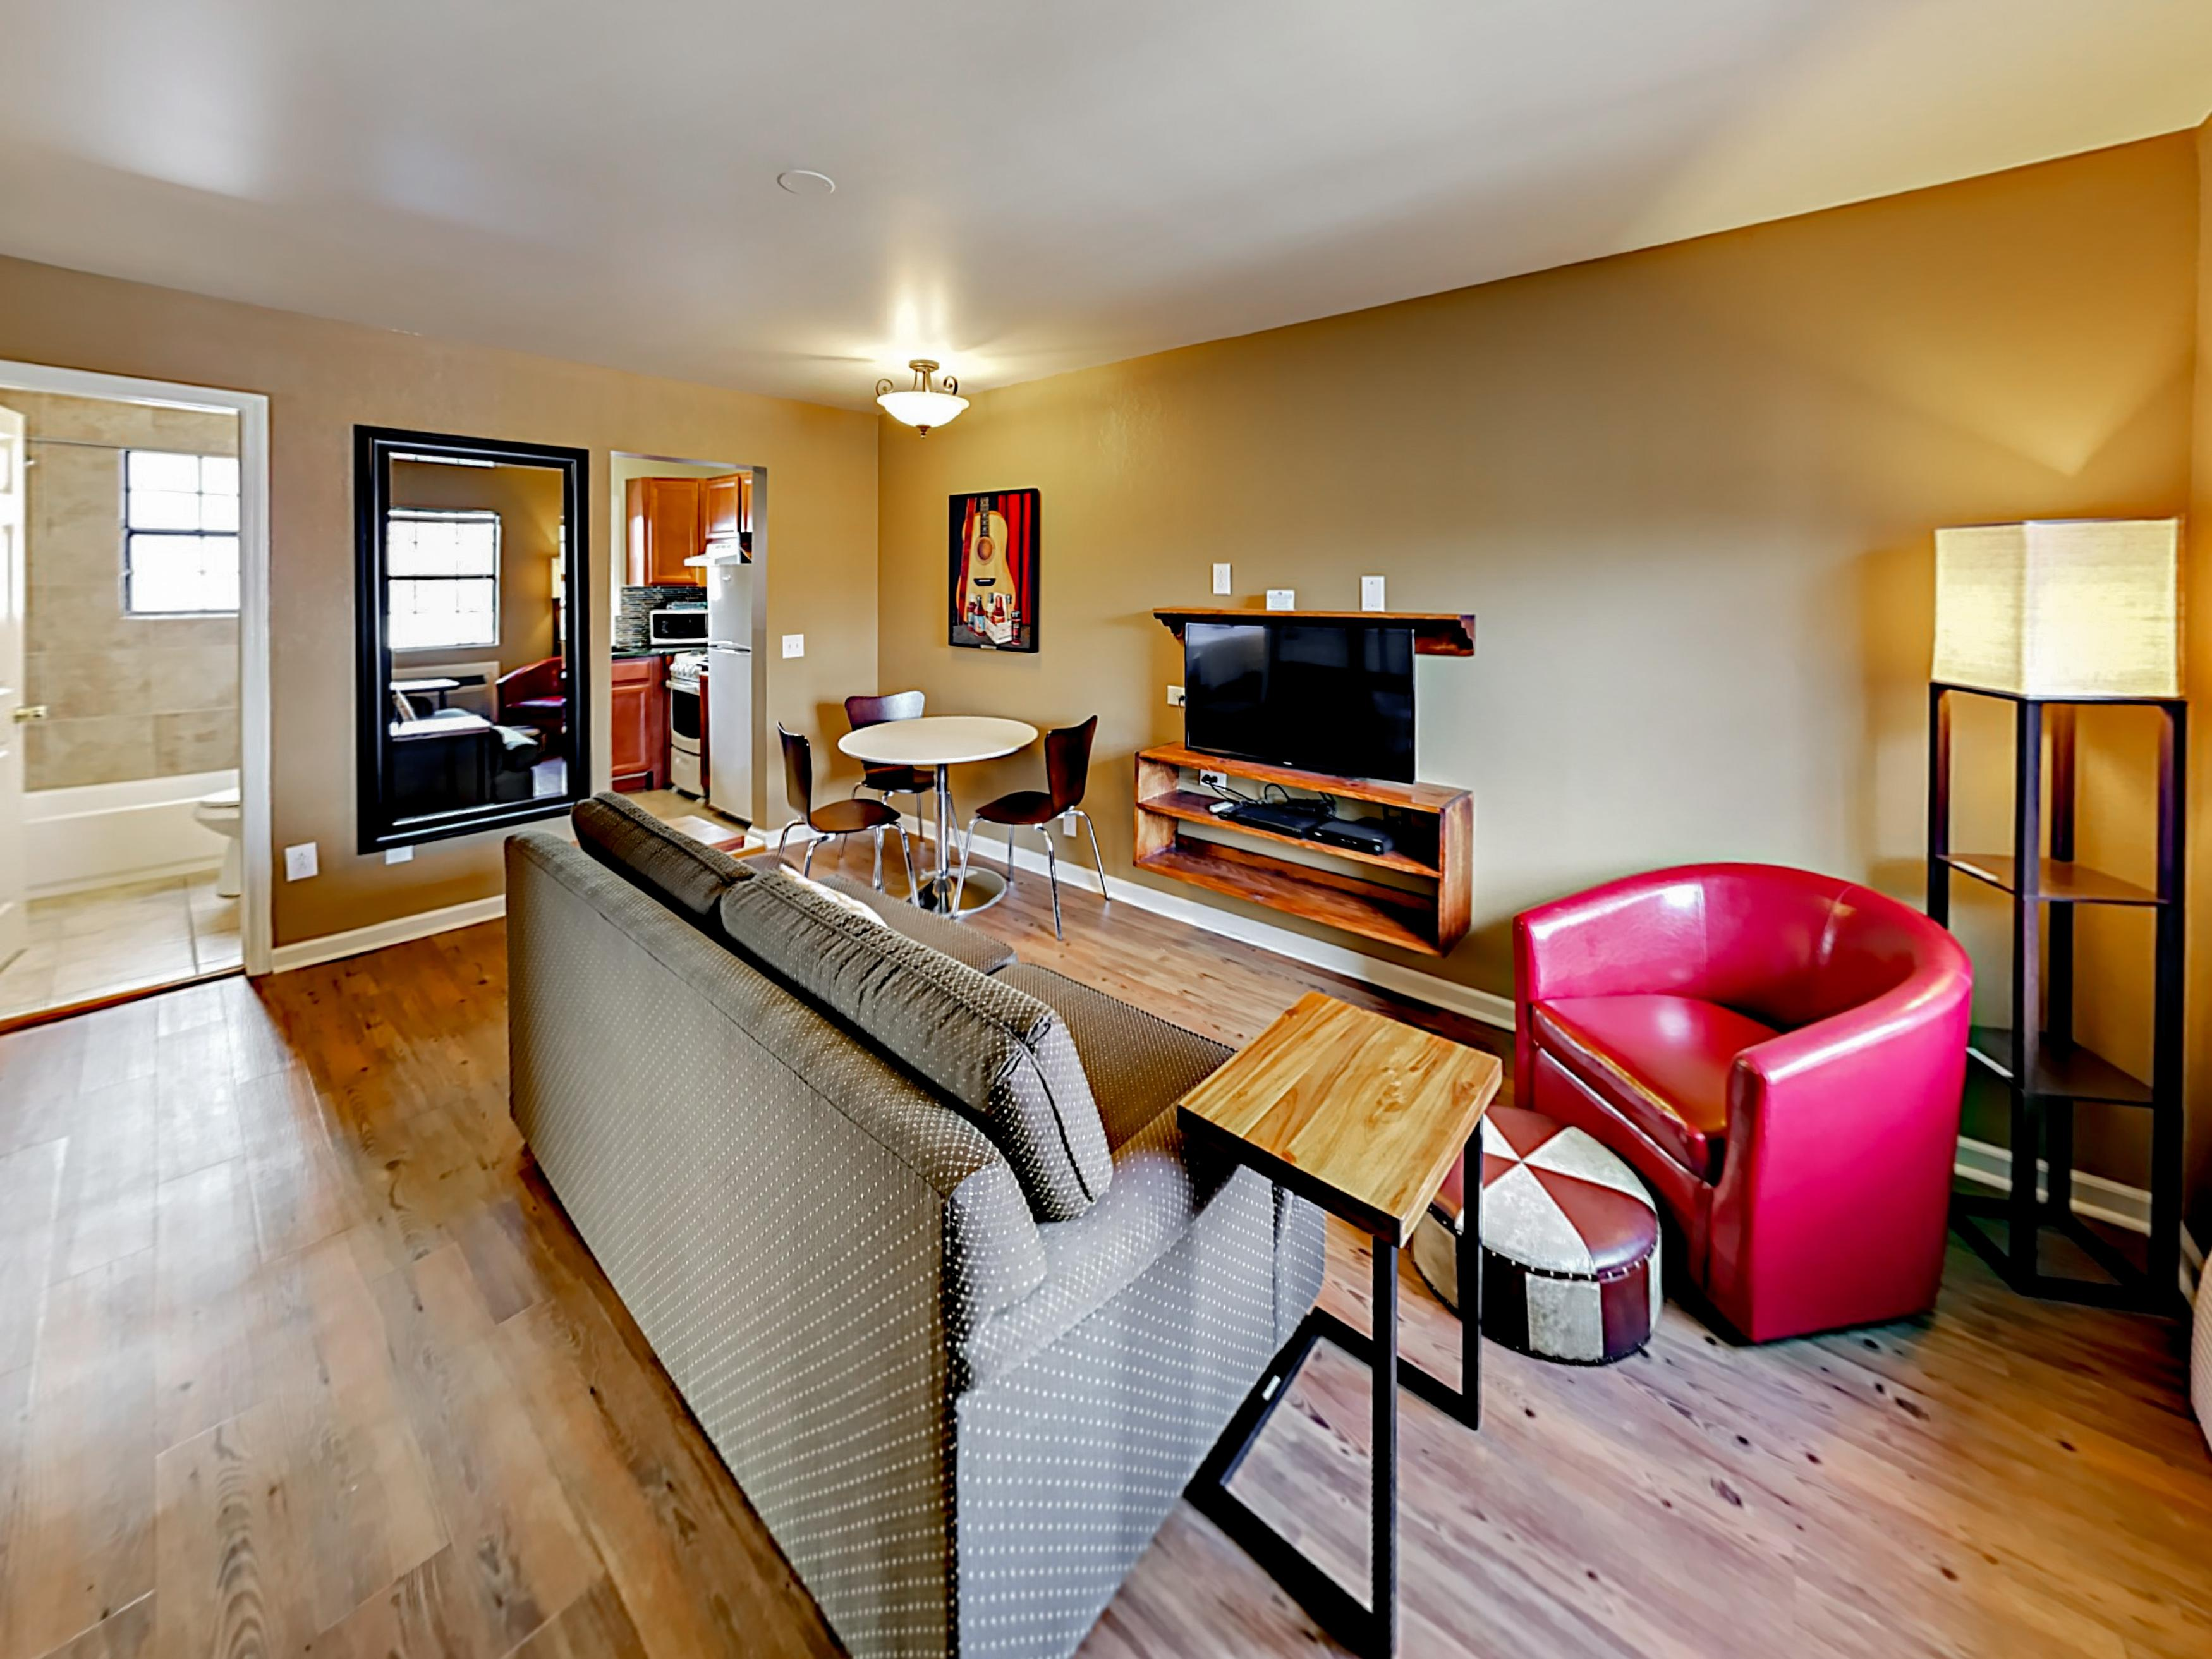 Property Image 1 - Cheerful Condo with Cozy Decor